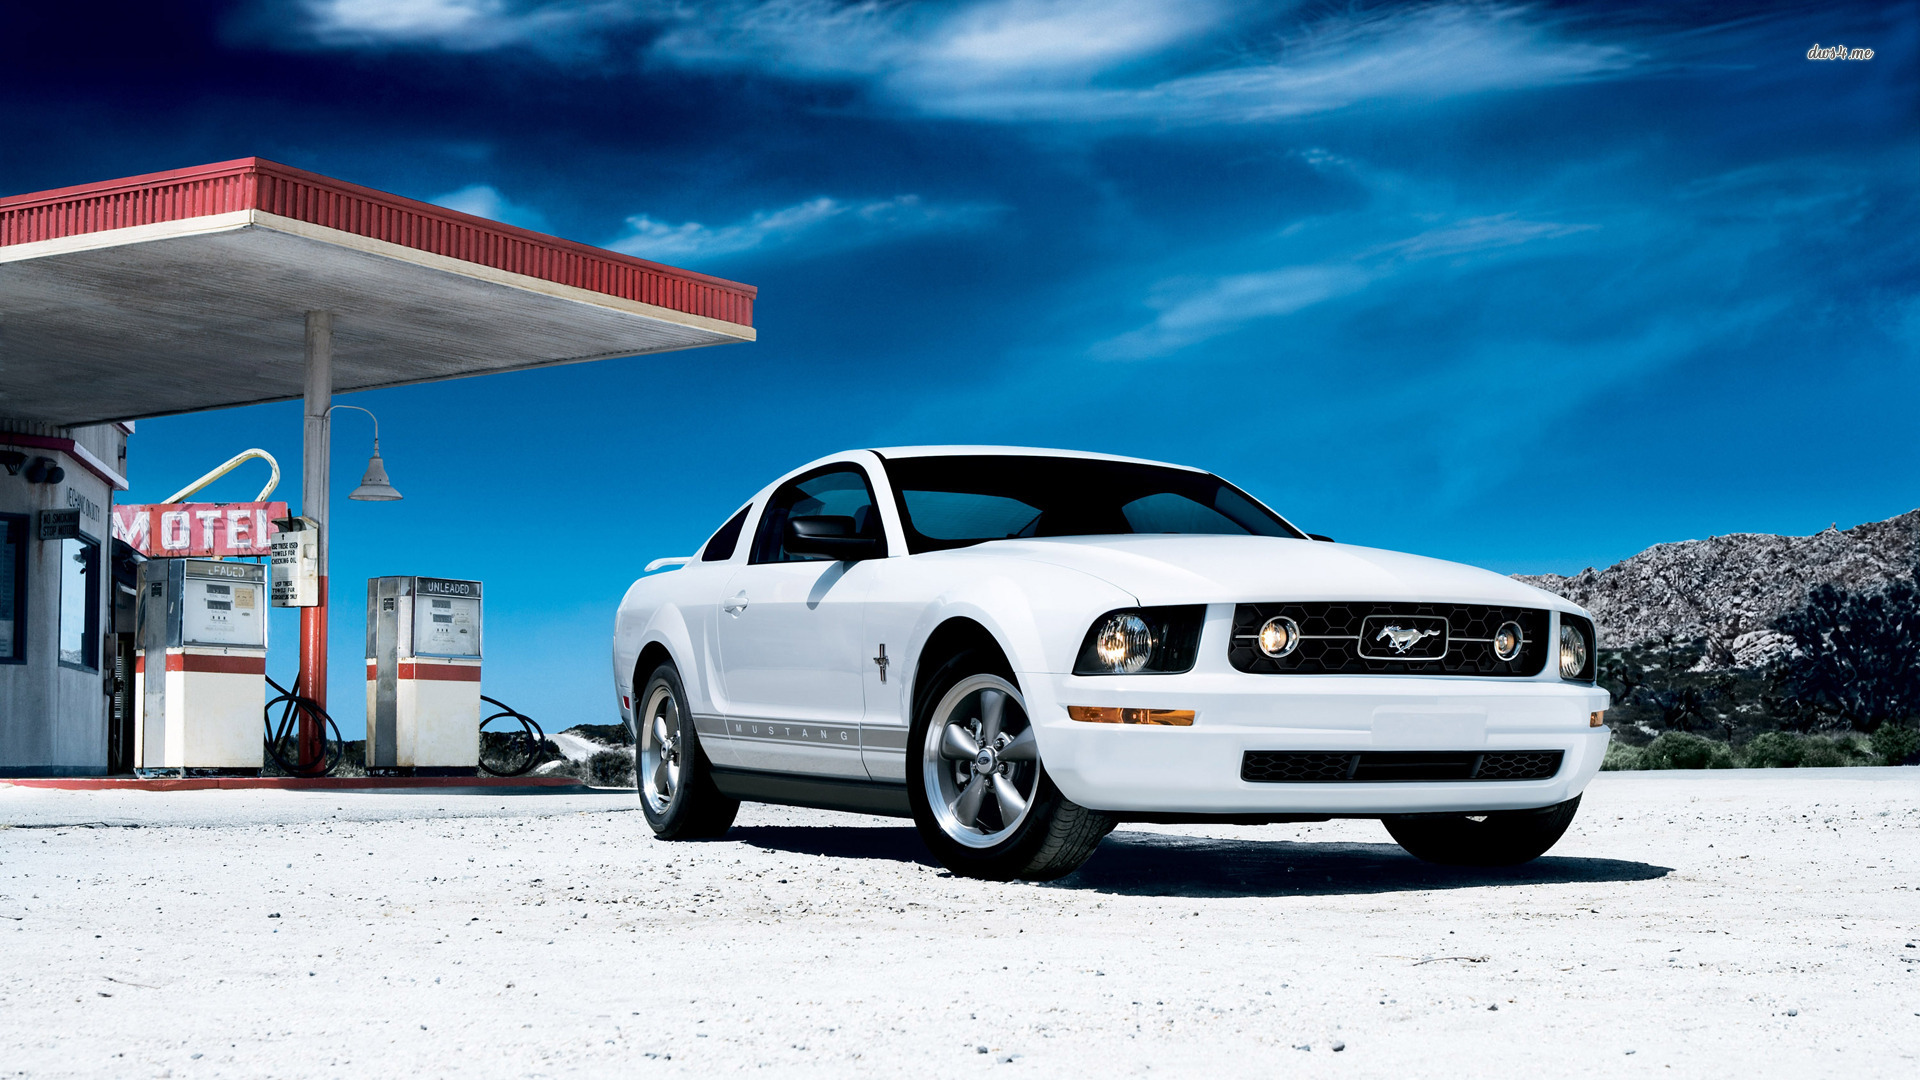 White Ford Mustang Wallpaper on Gas Station